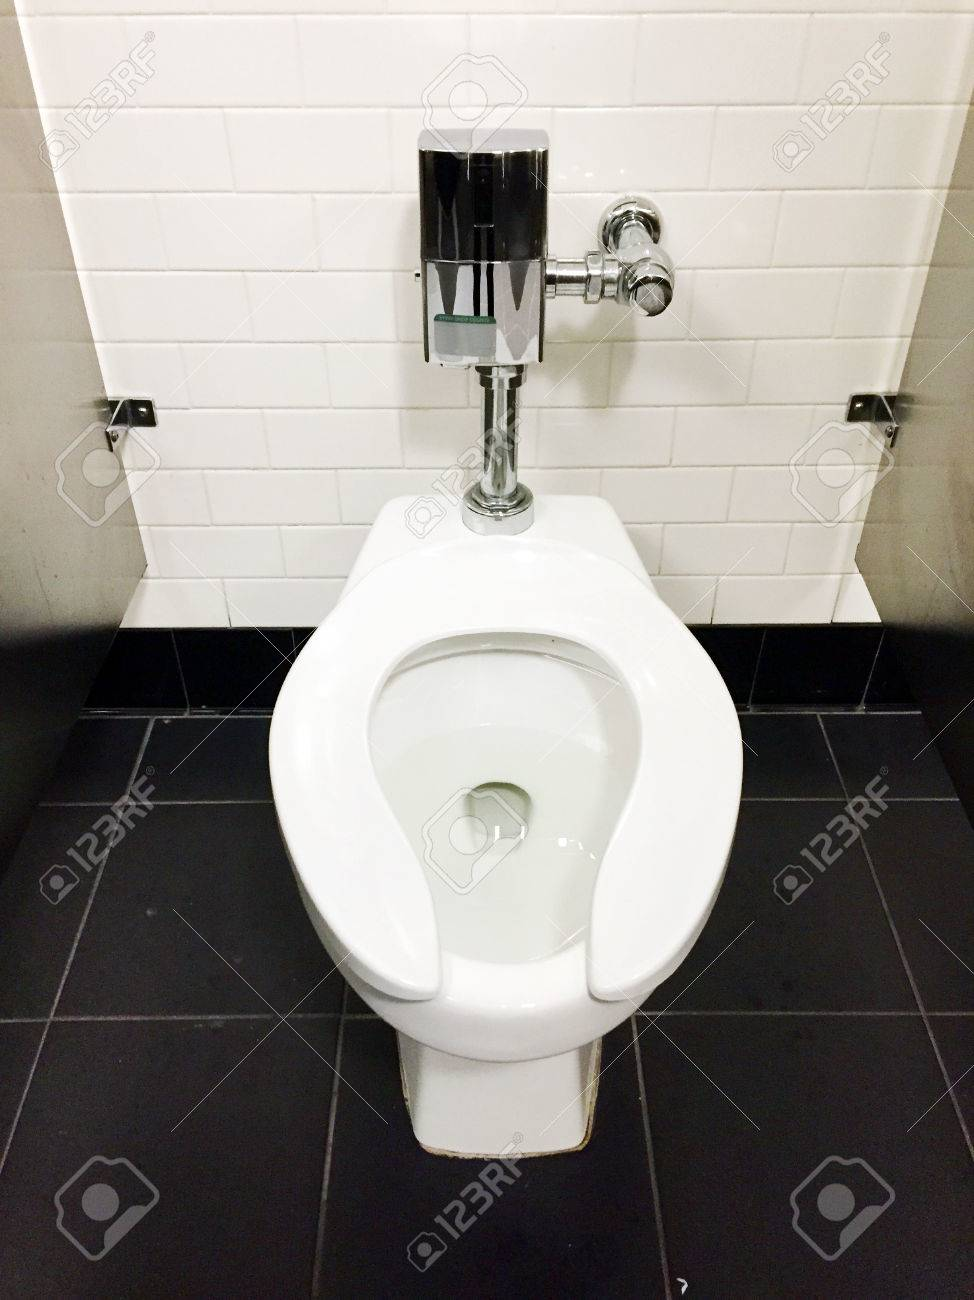 White Toilet In Metal Stall In Public Bathroom On Black Tile.. Stock ...